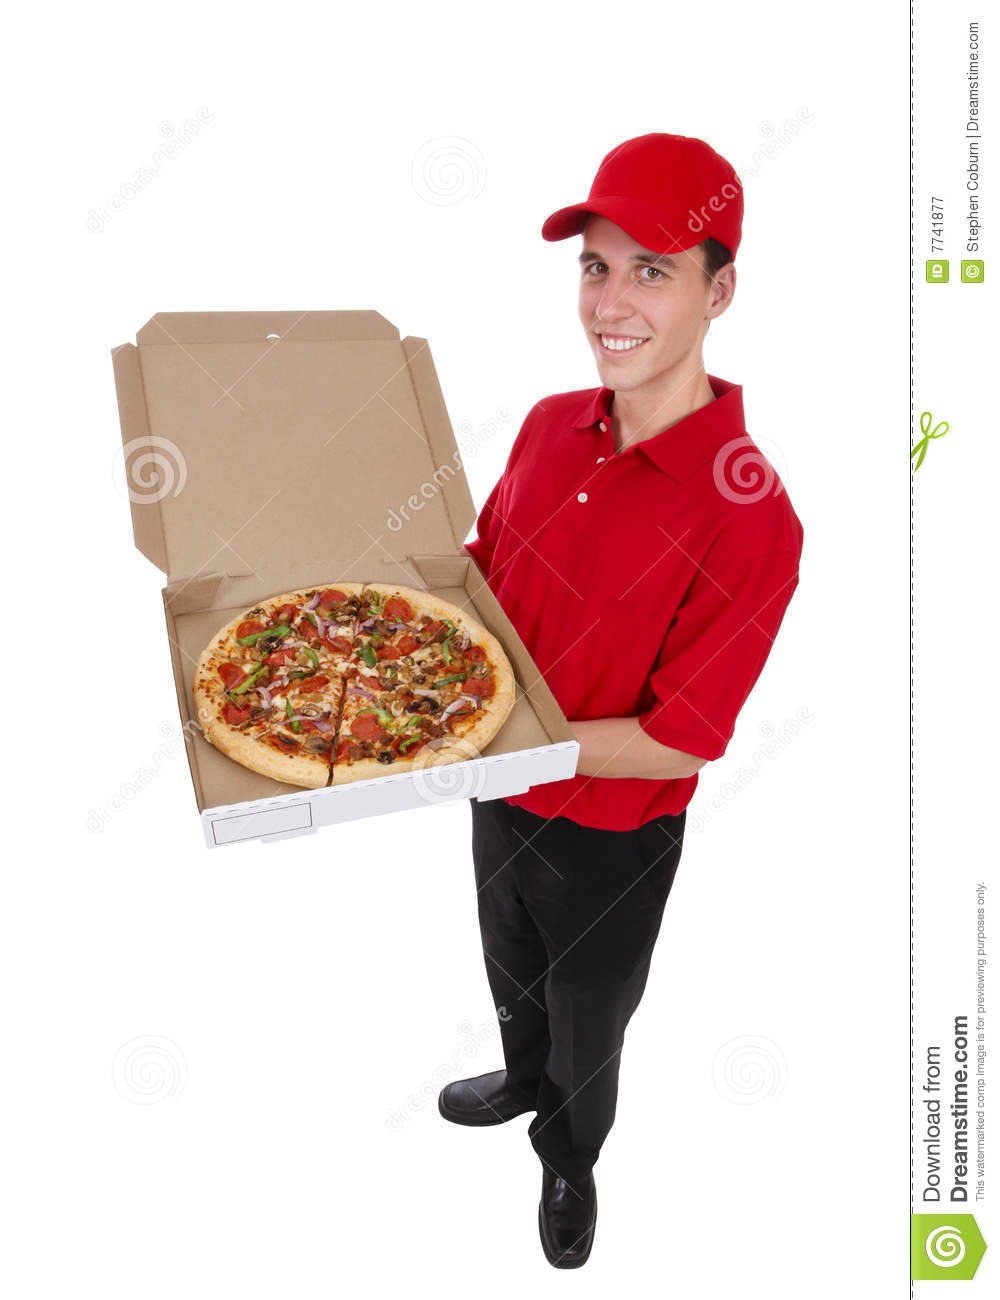 Pizza Delivery Man Royalty Free Stock Photography - Image: 7741877